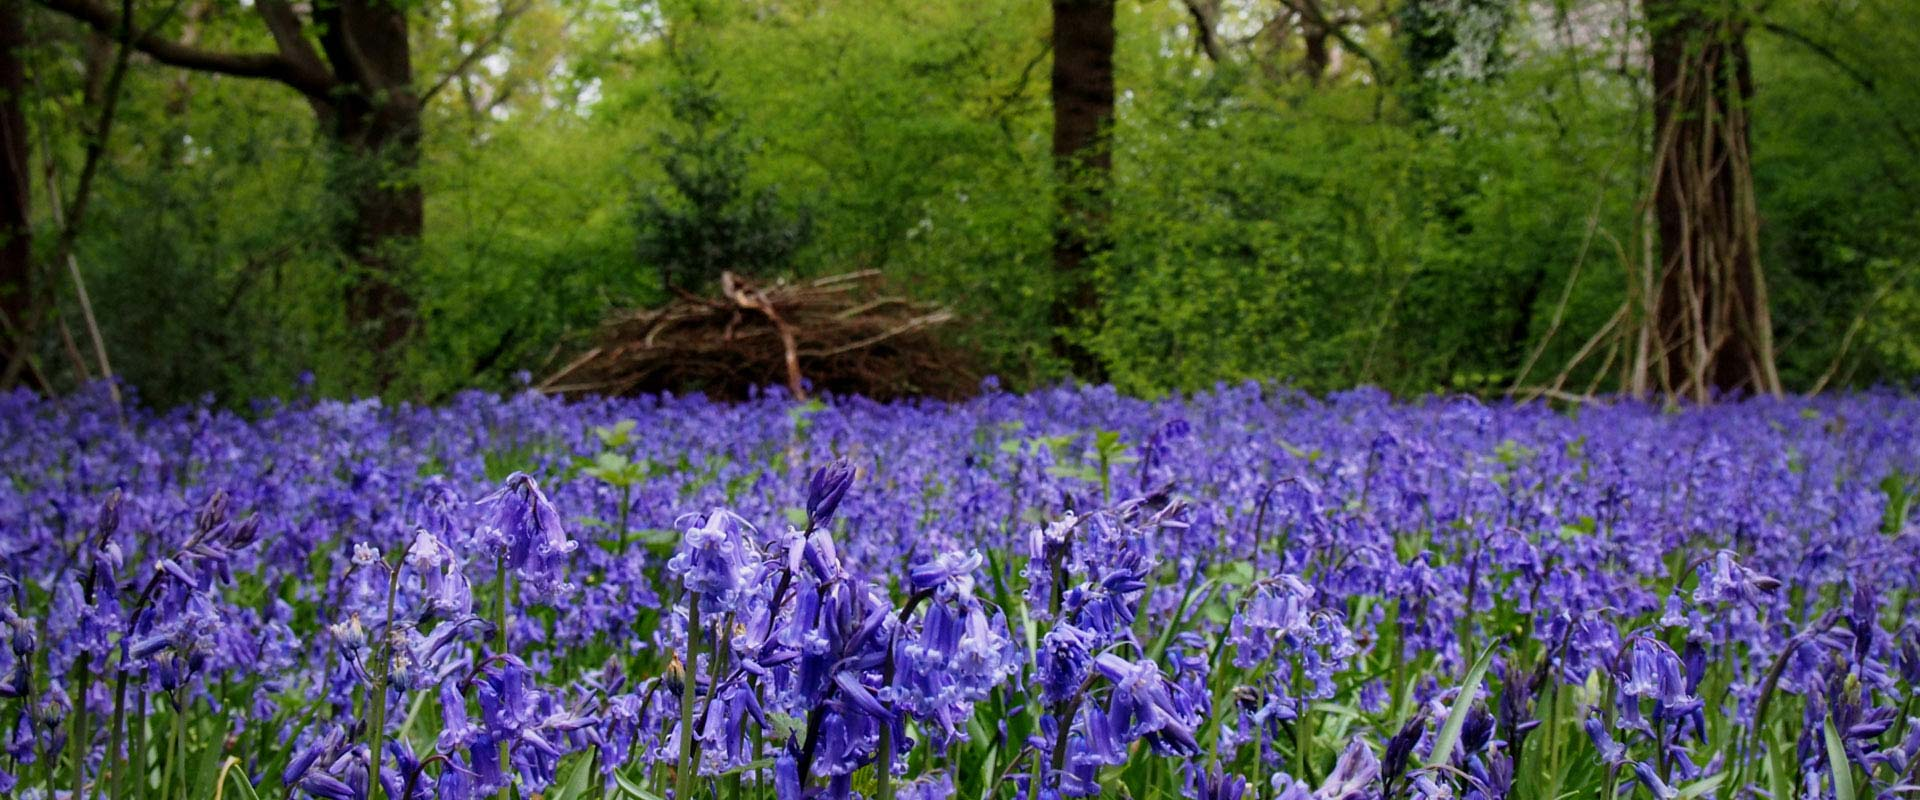 field of bluebells